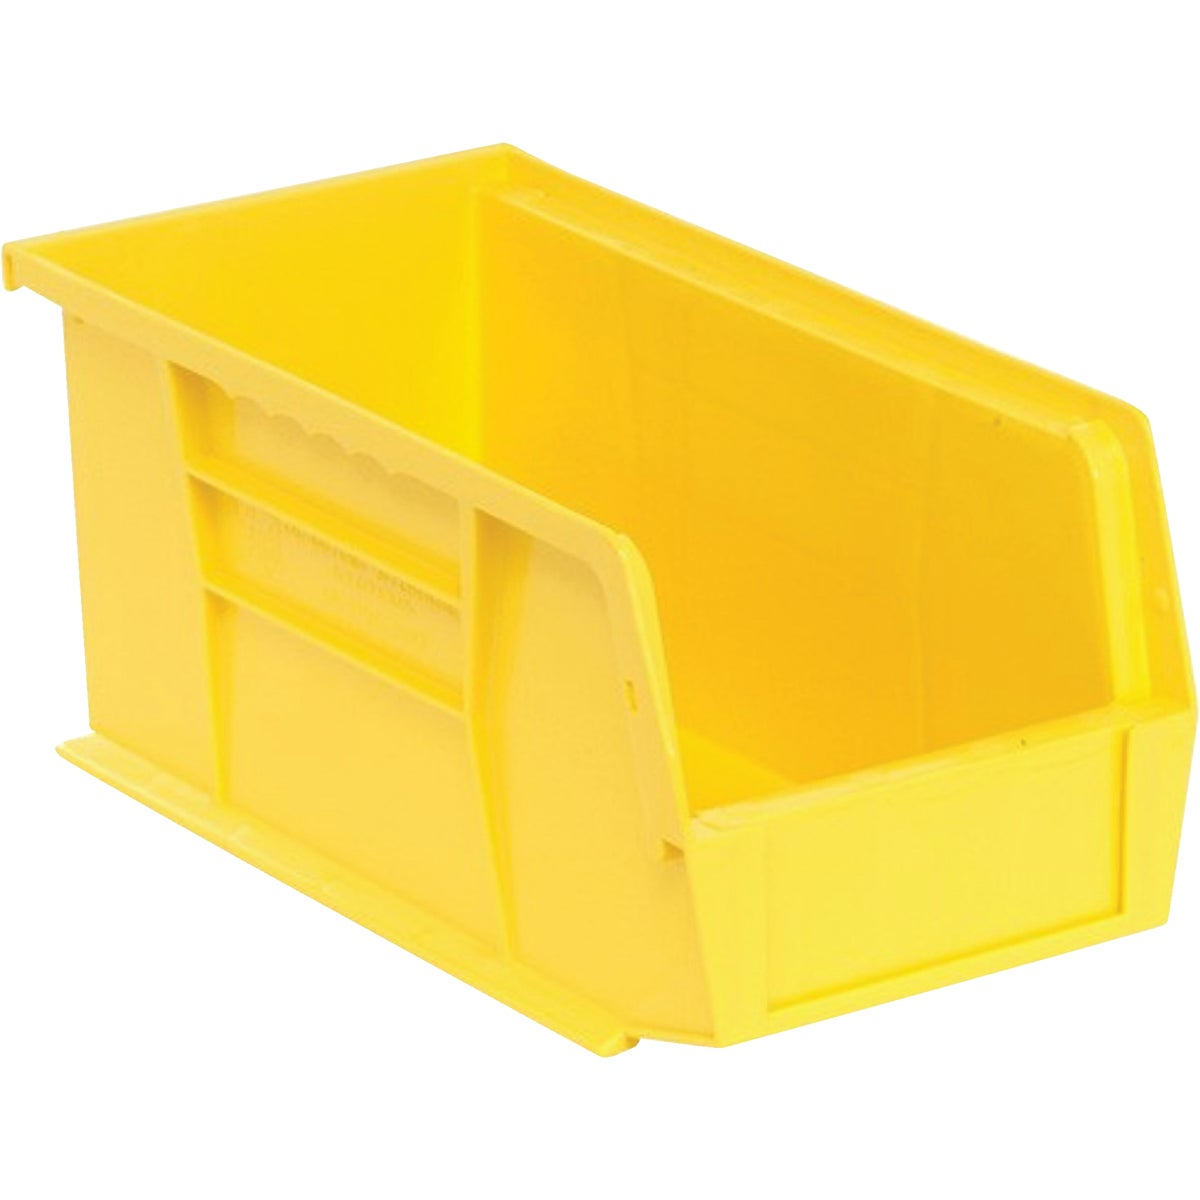 MEDIUM YELLW STORAGE BIN